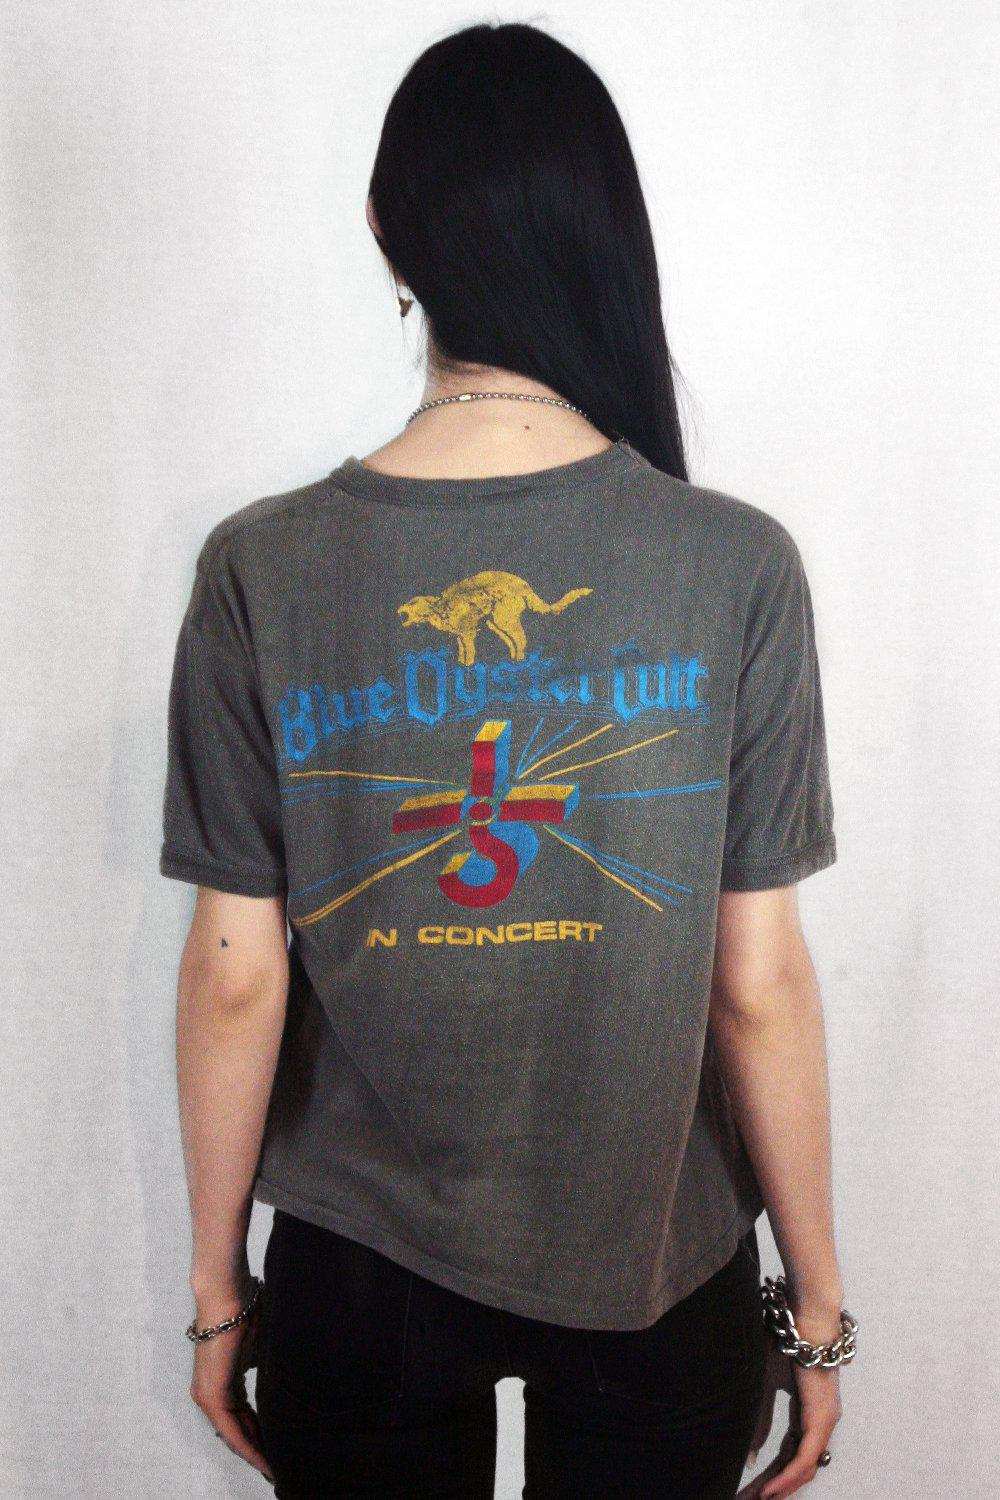 Blue Öyster Cult Double-Sided Reaper Tour Tee